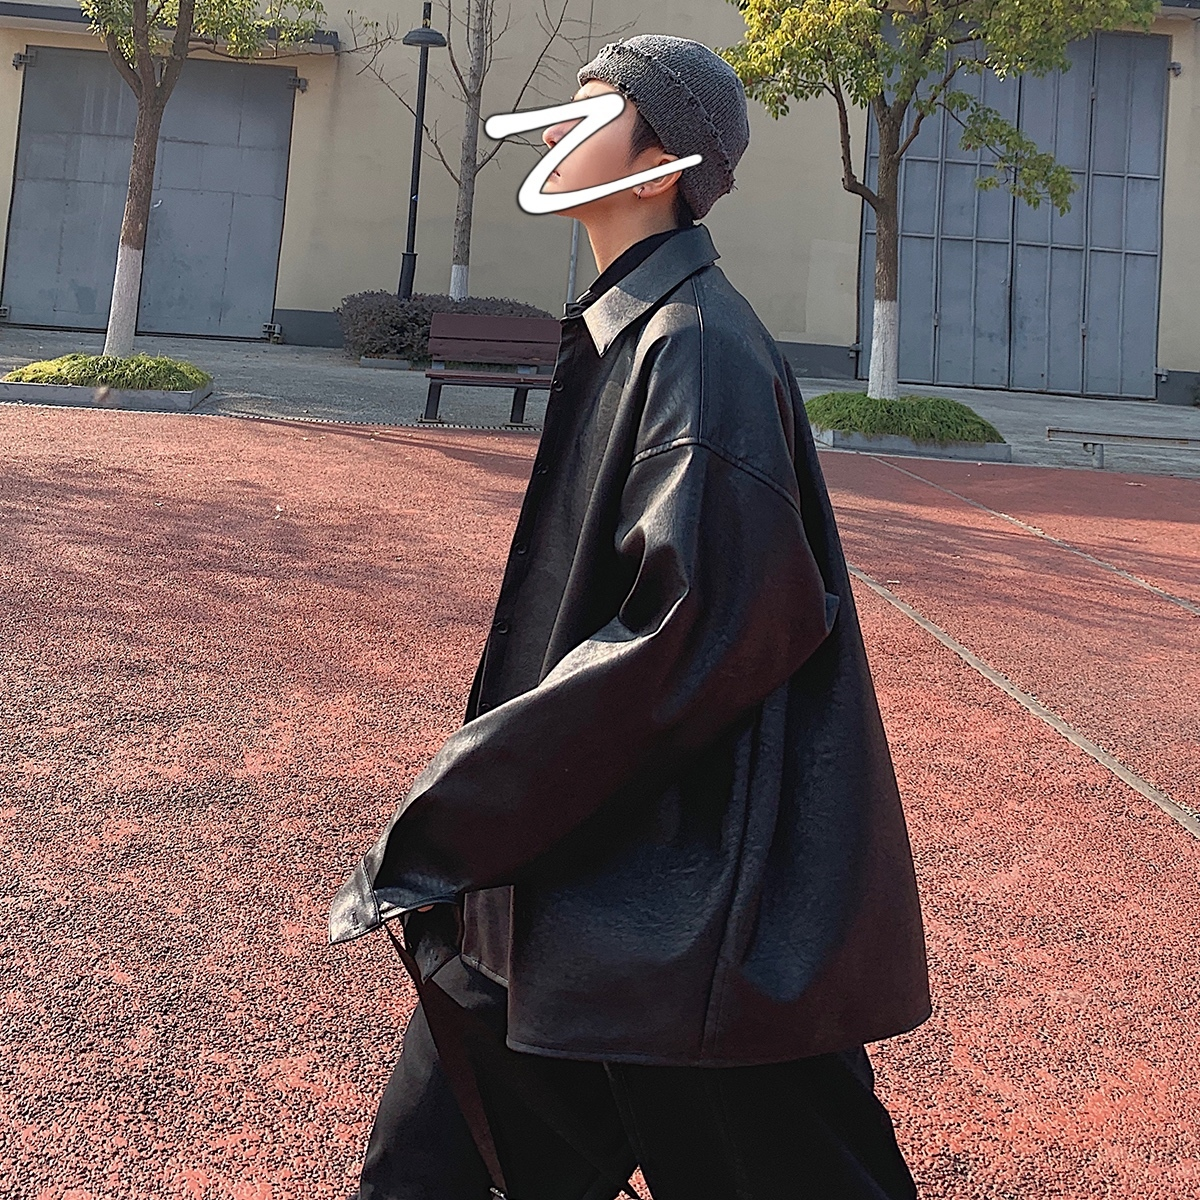 2020 Men's Black Color Long Pu Leather Clothing Zipper Outerwear Trench Russian Bomer Jacket Loose Leisure Fashion Coat M-2XL